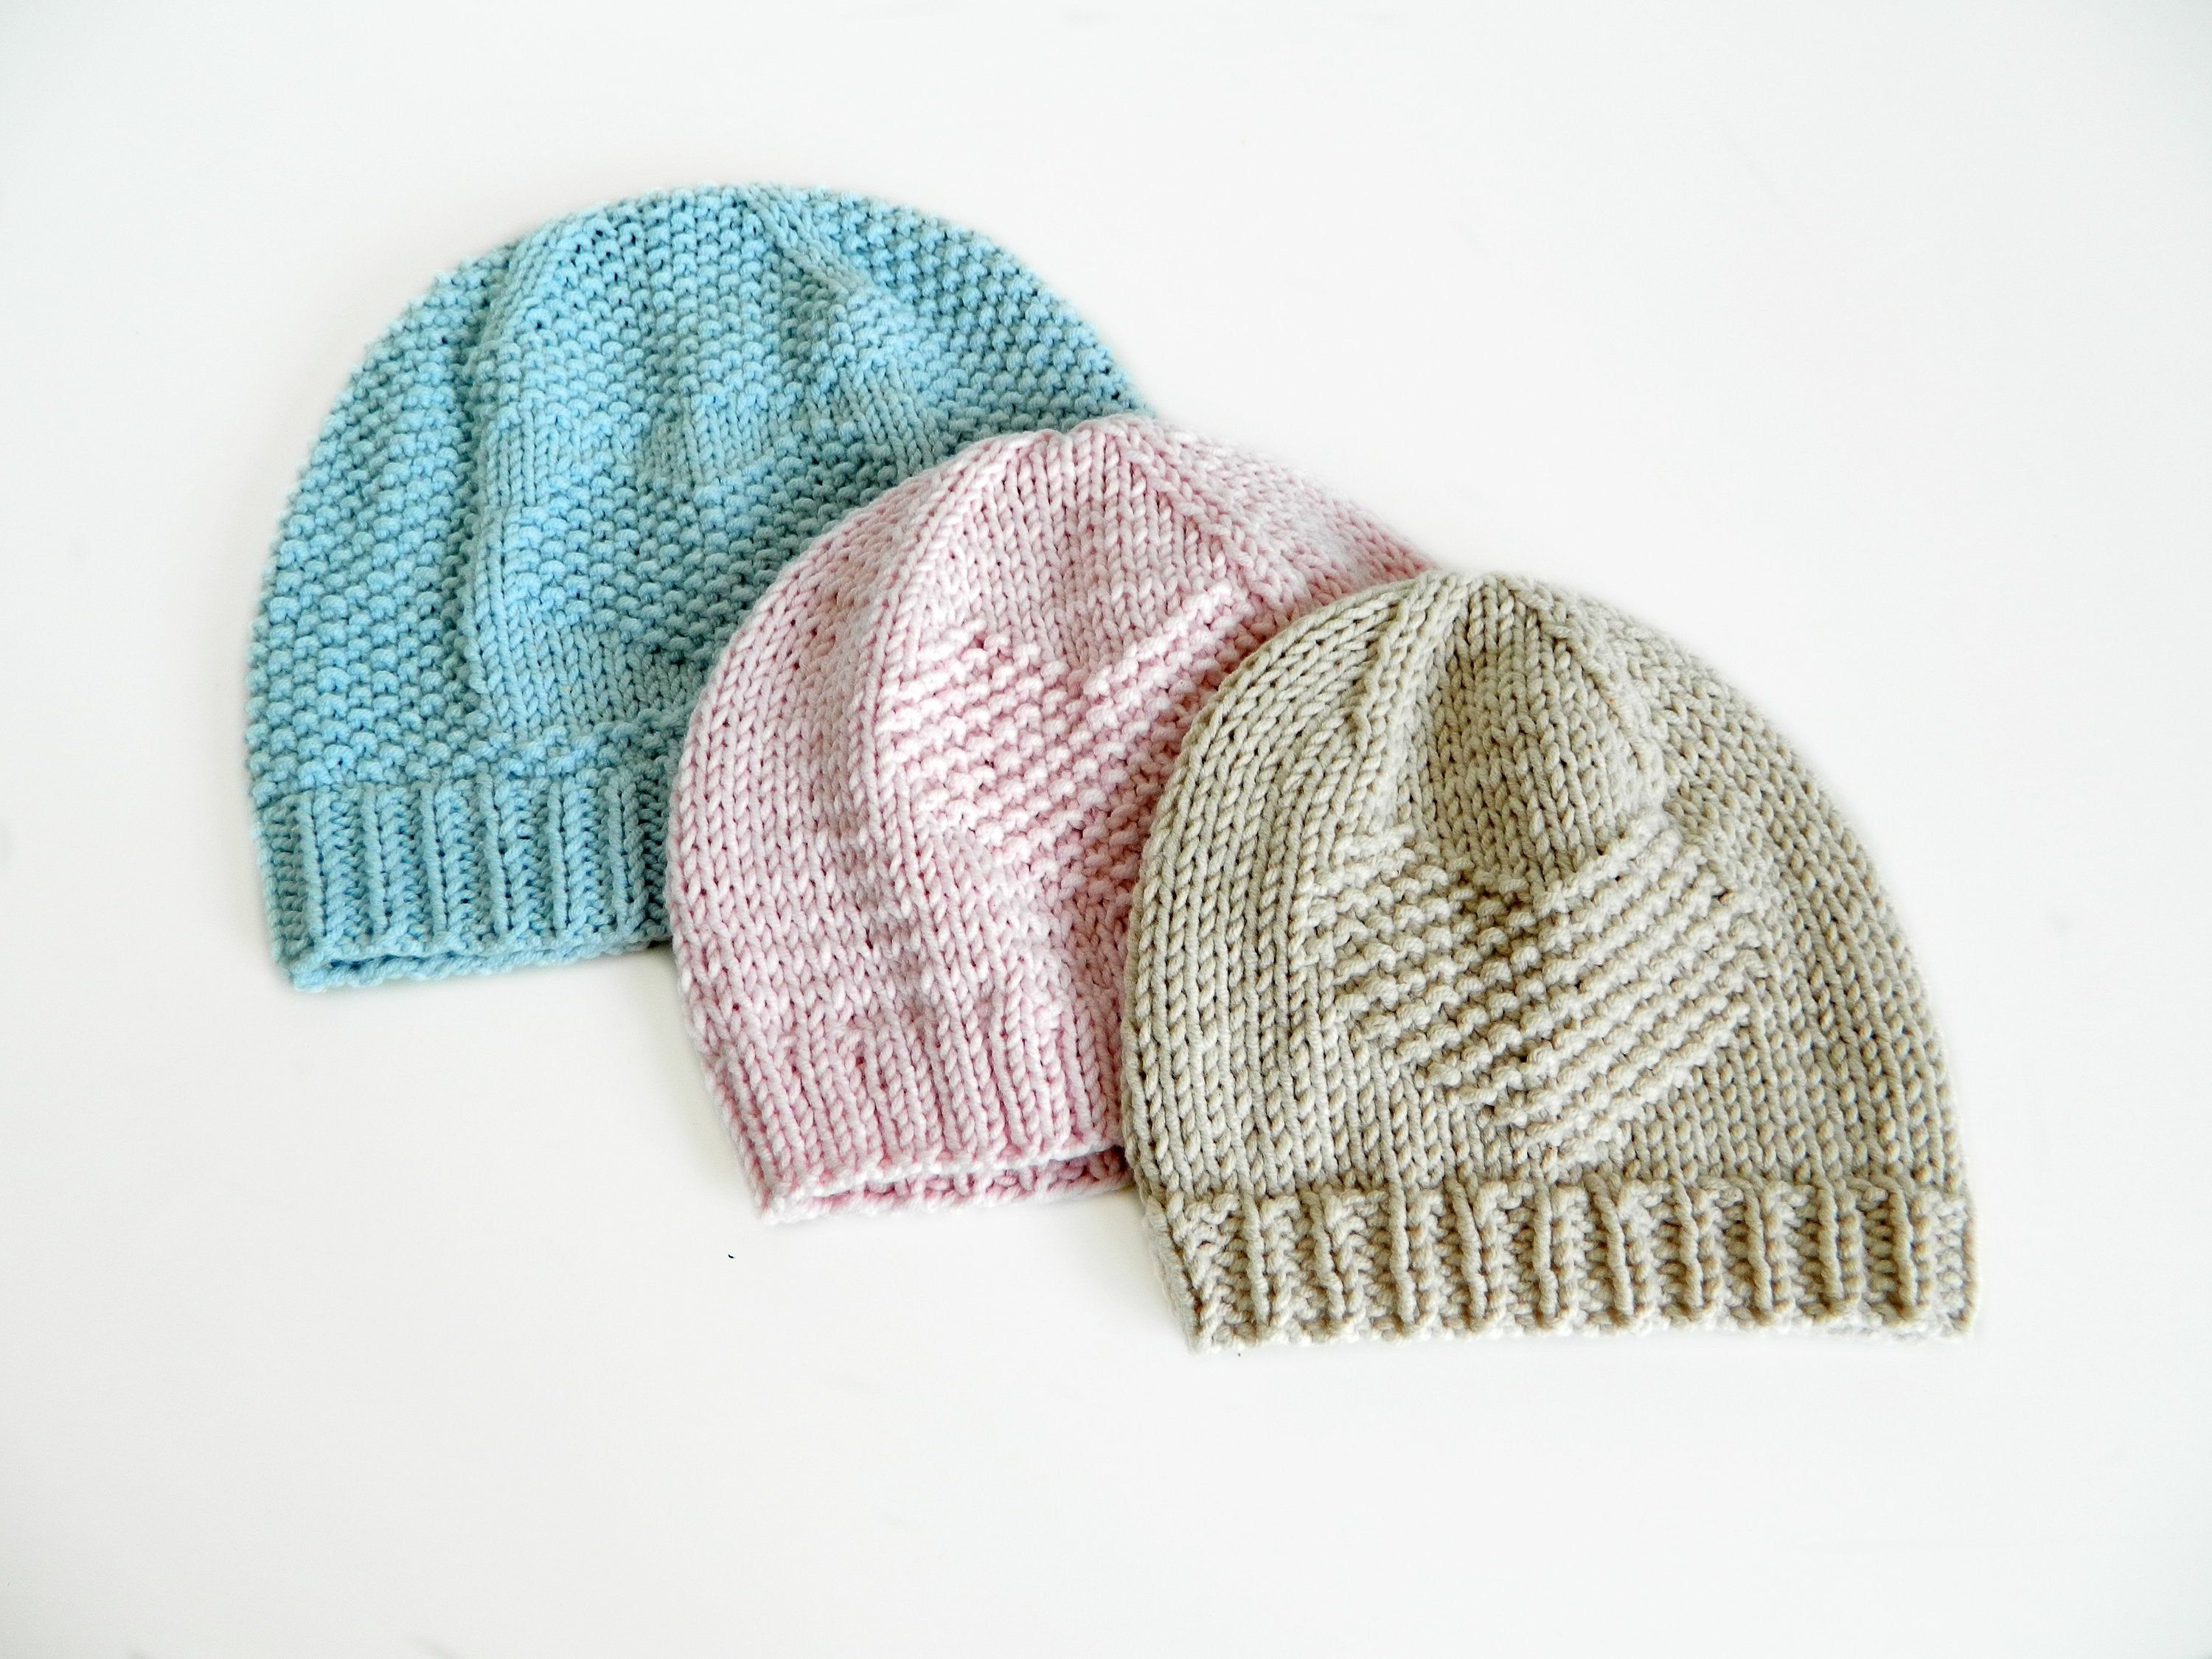 Heart Hat Knitting Pattern For Babies And Toddlers English Etsy In 2021 Baby Hat Knitting Pattern Baby Hat Knitting Patterns Free Baby Hats Knitting